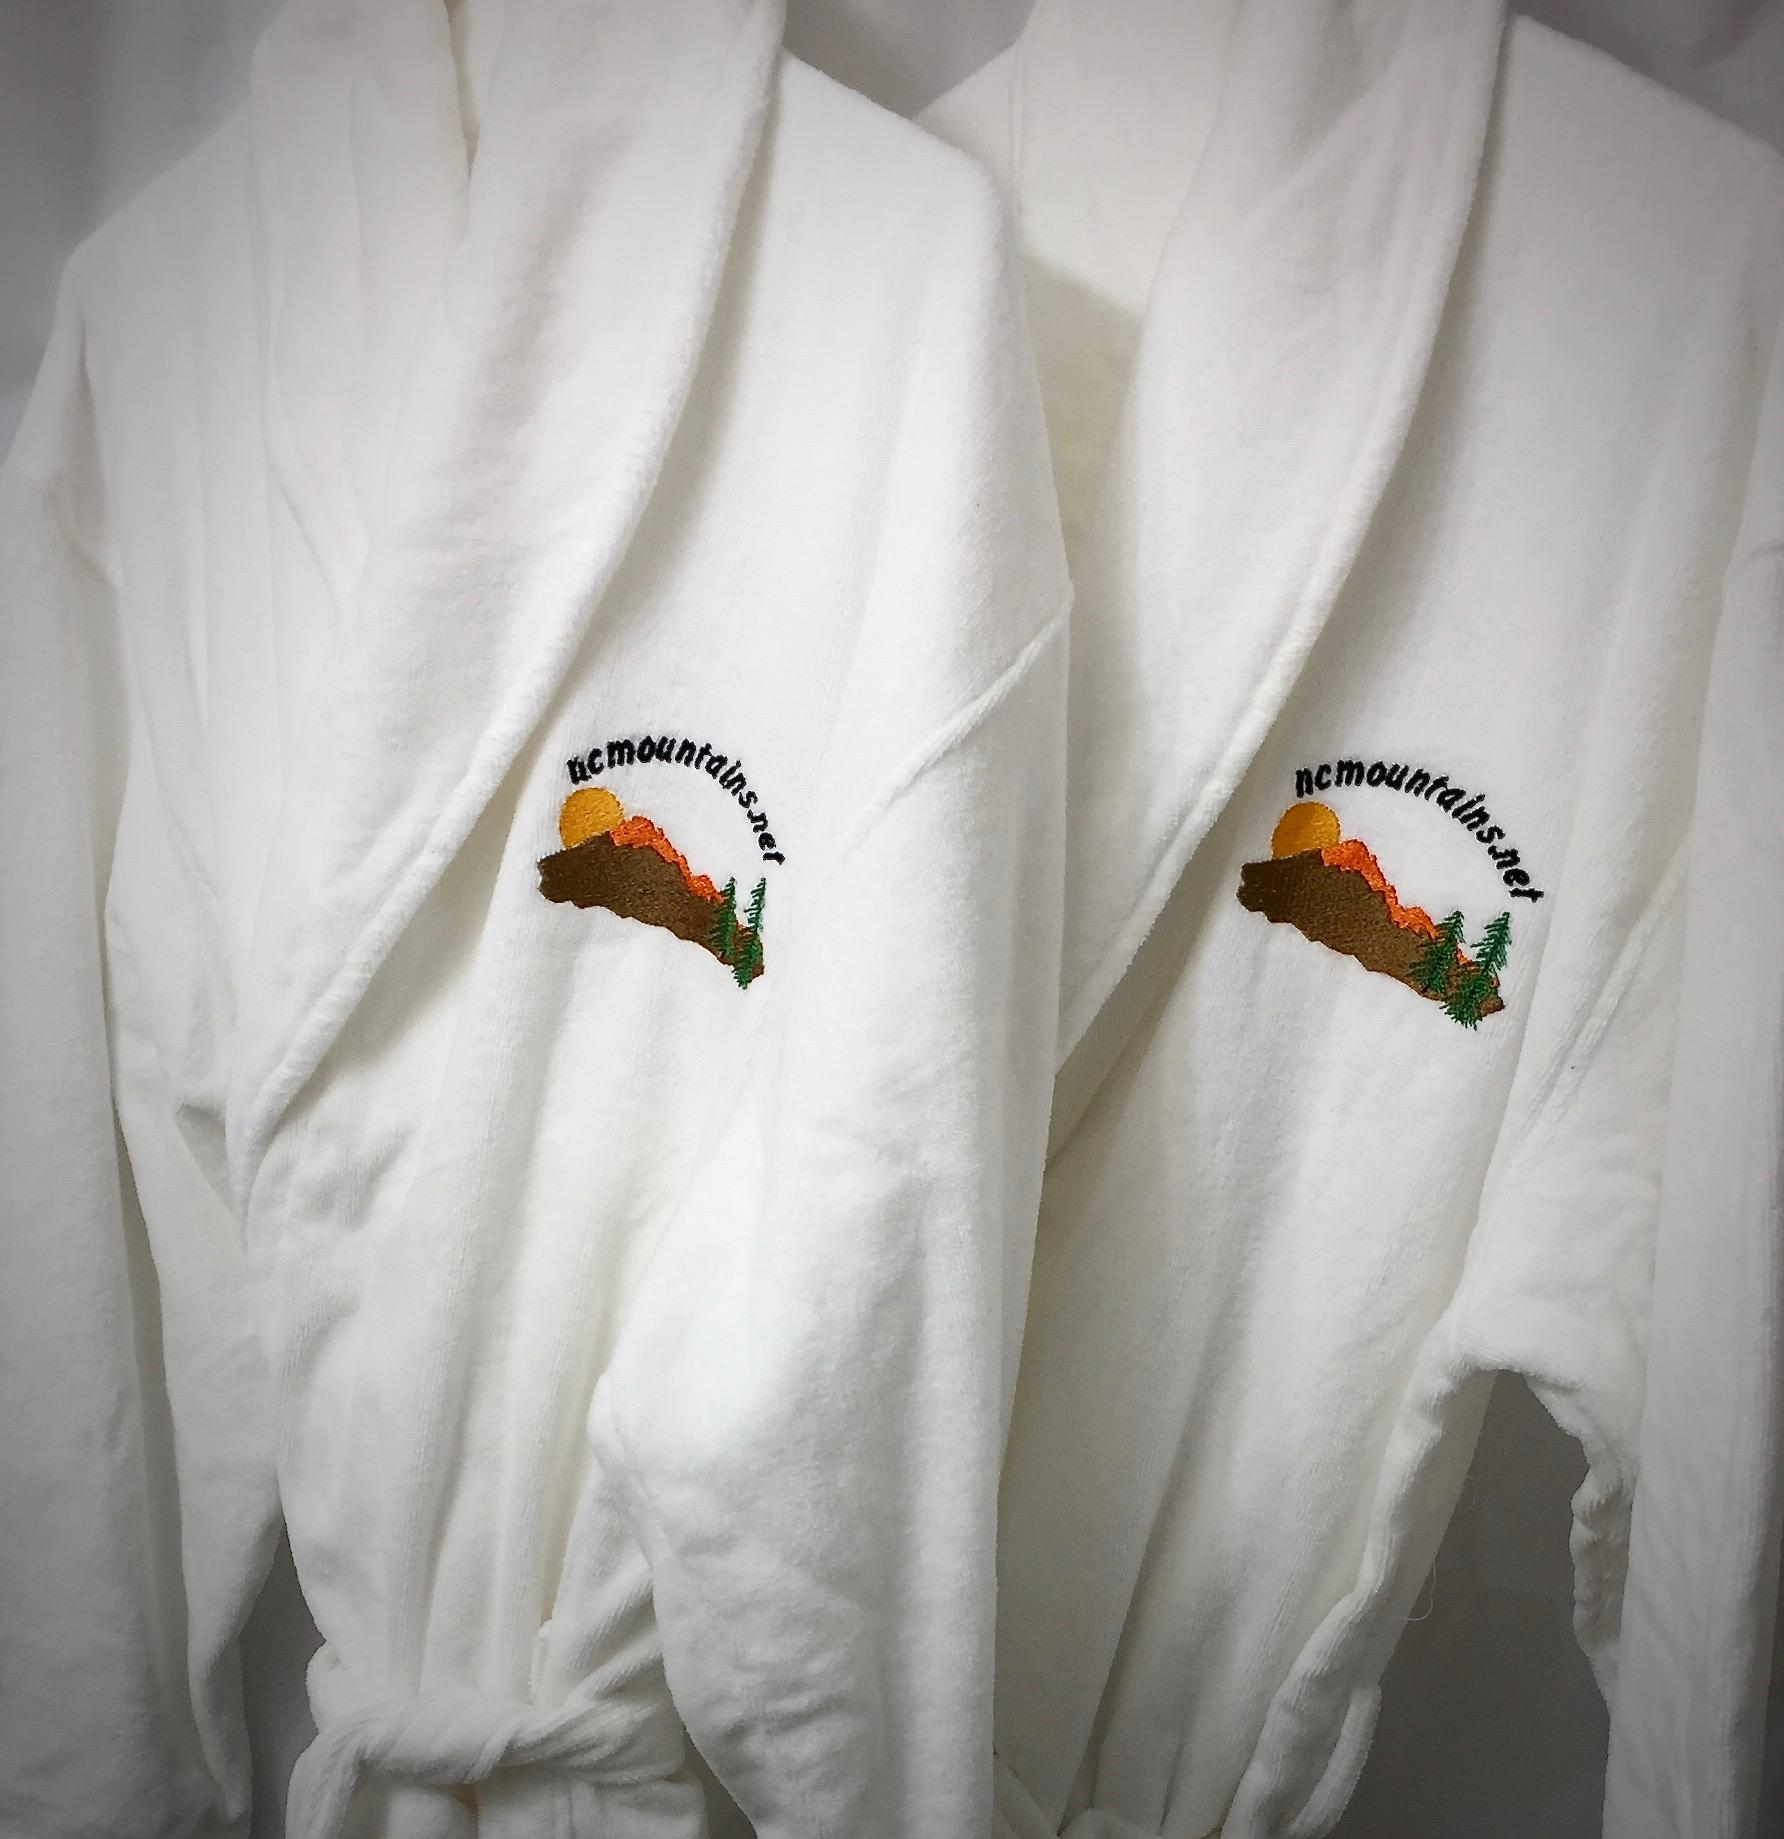 Two plush bathrobes are available for your use during your stay